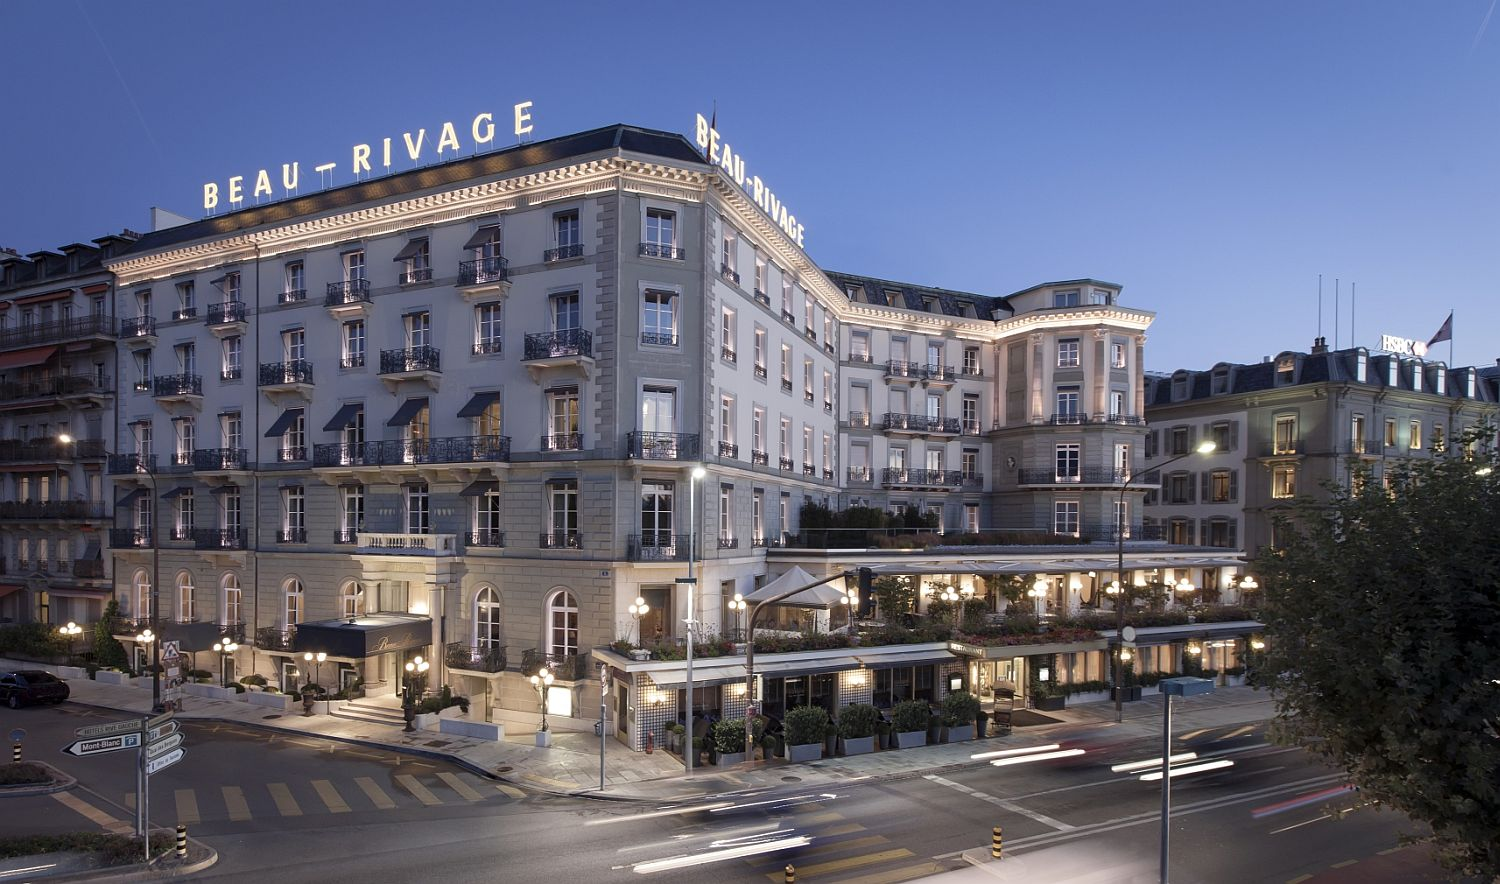 Hotel Beau Rivage after sunset